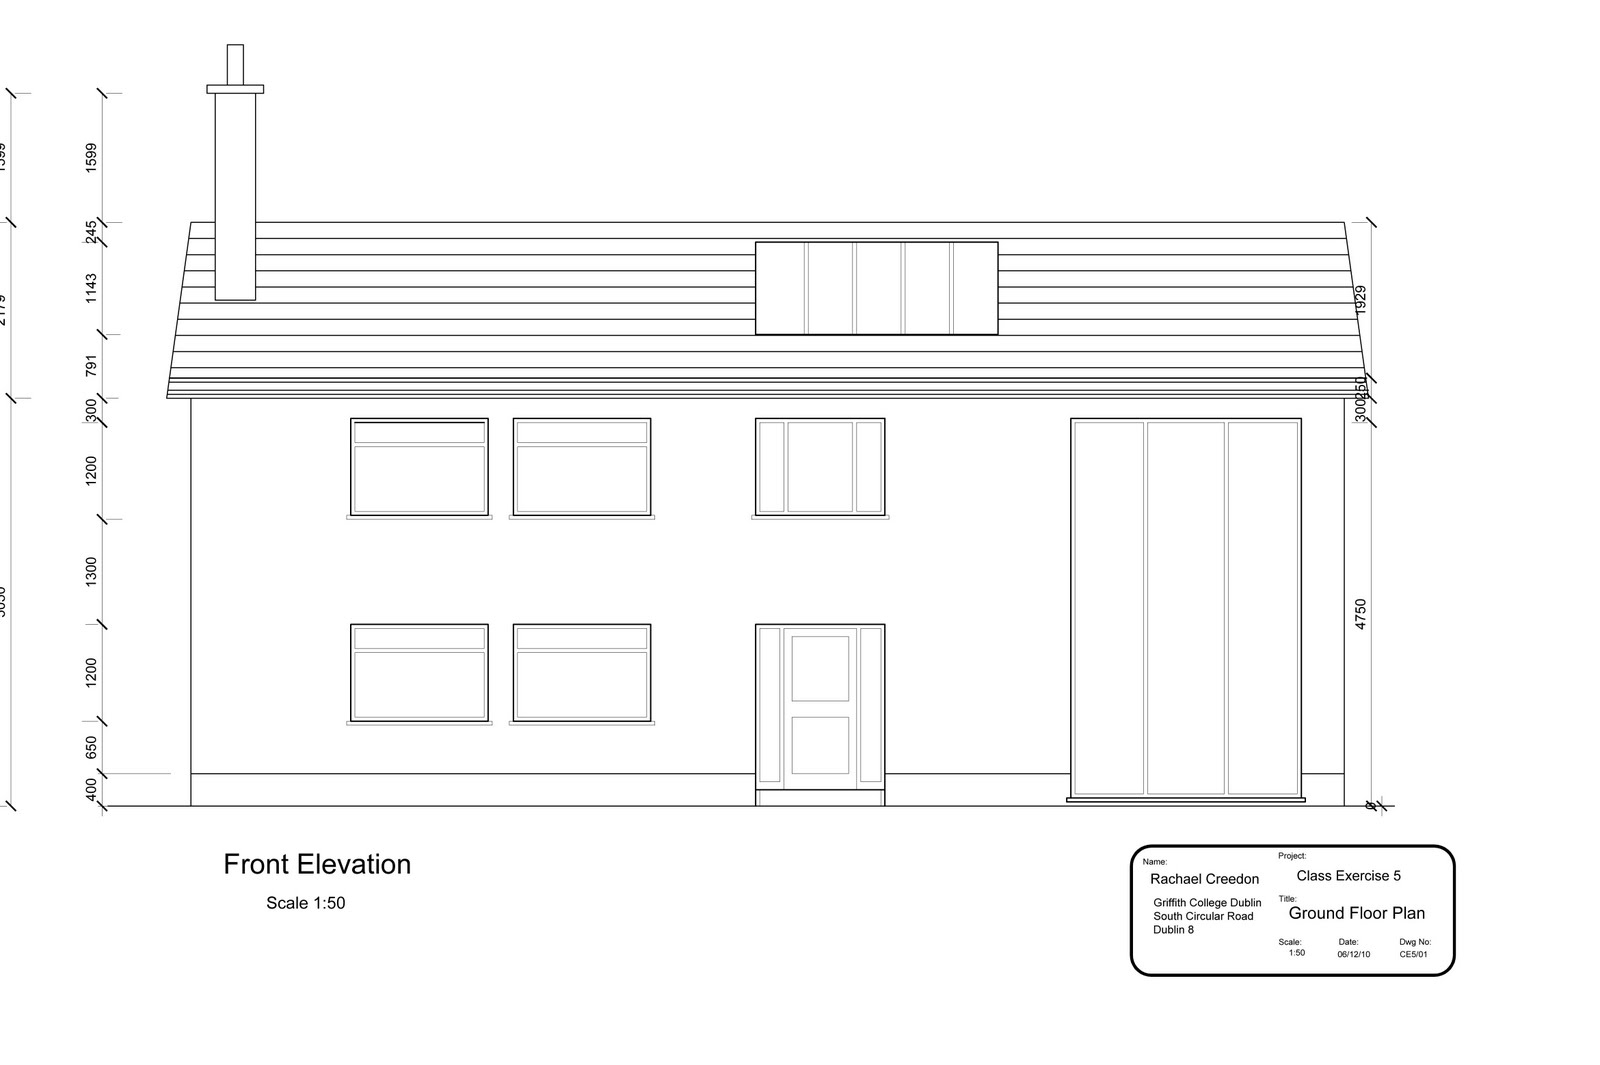 Front Elevation In 2d : Spaghetti on the wall d cad